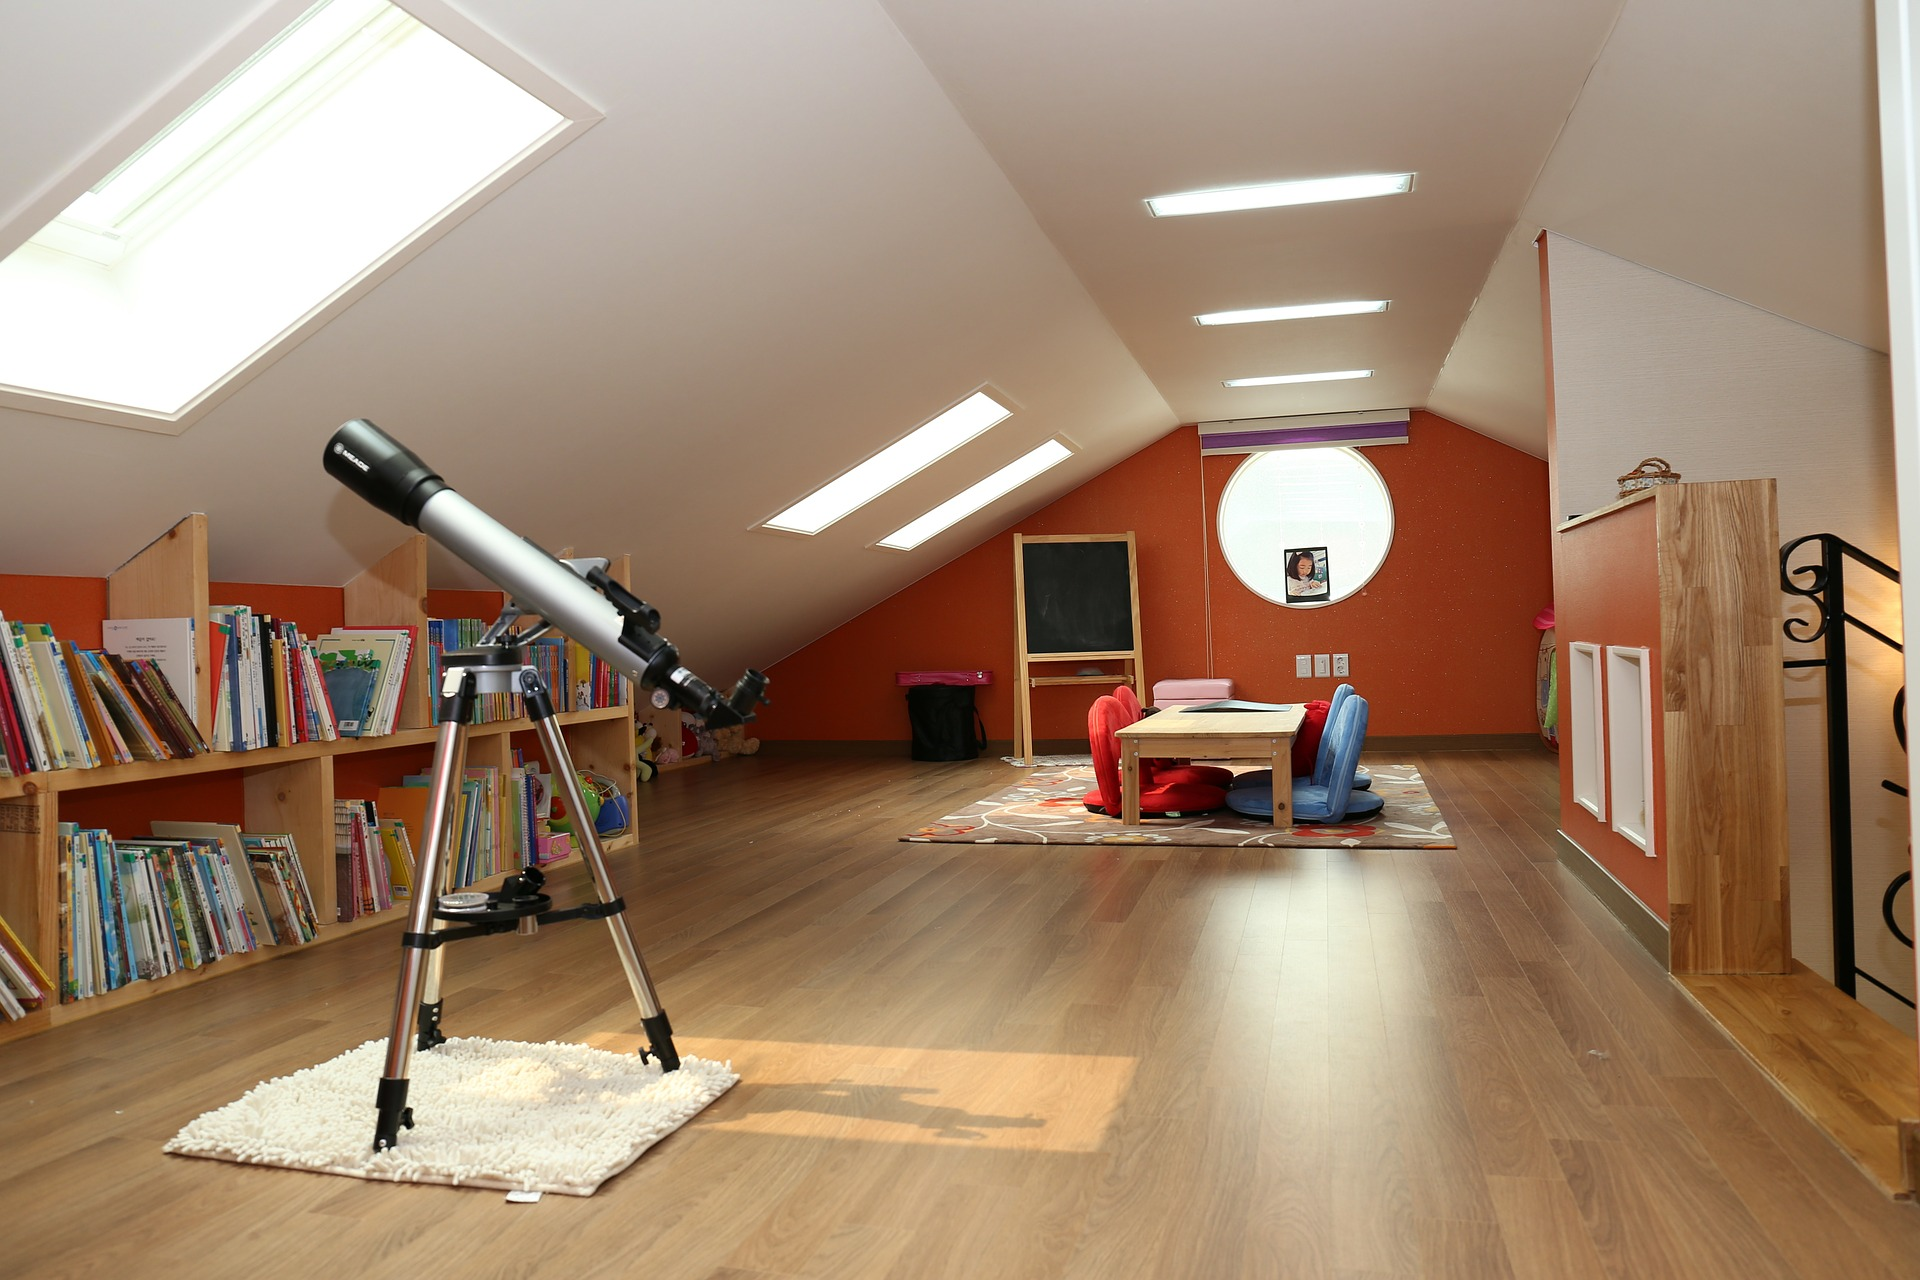 loft conversion room with books, open space and telescope